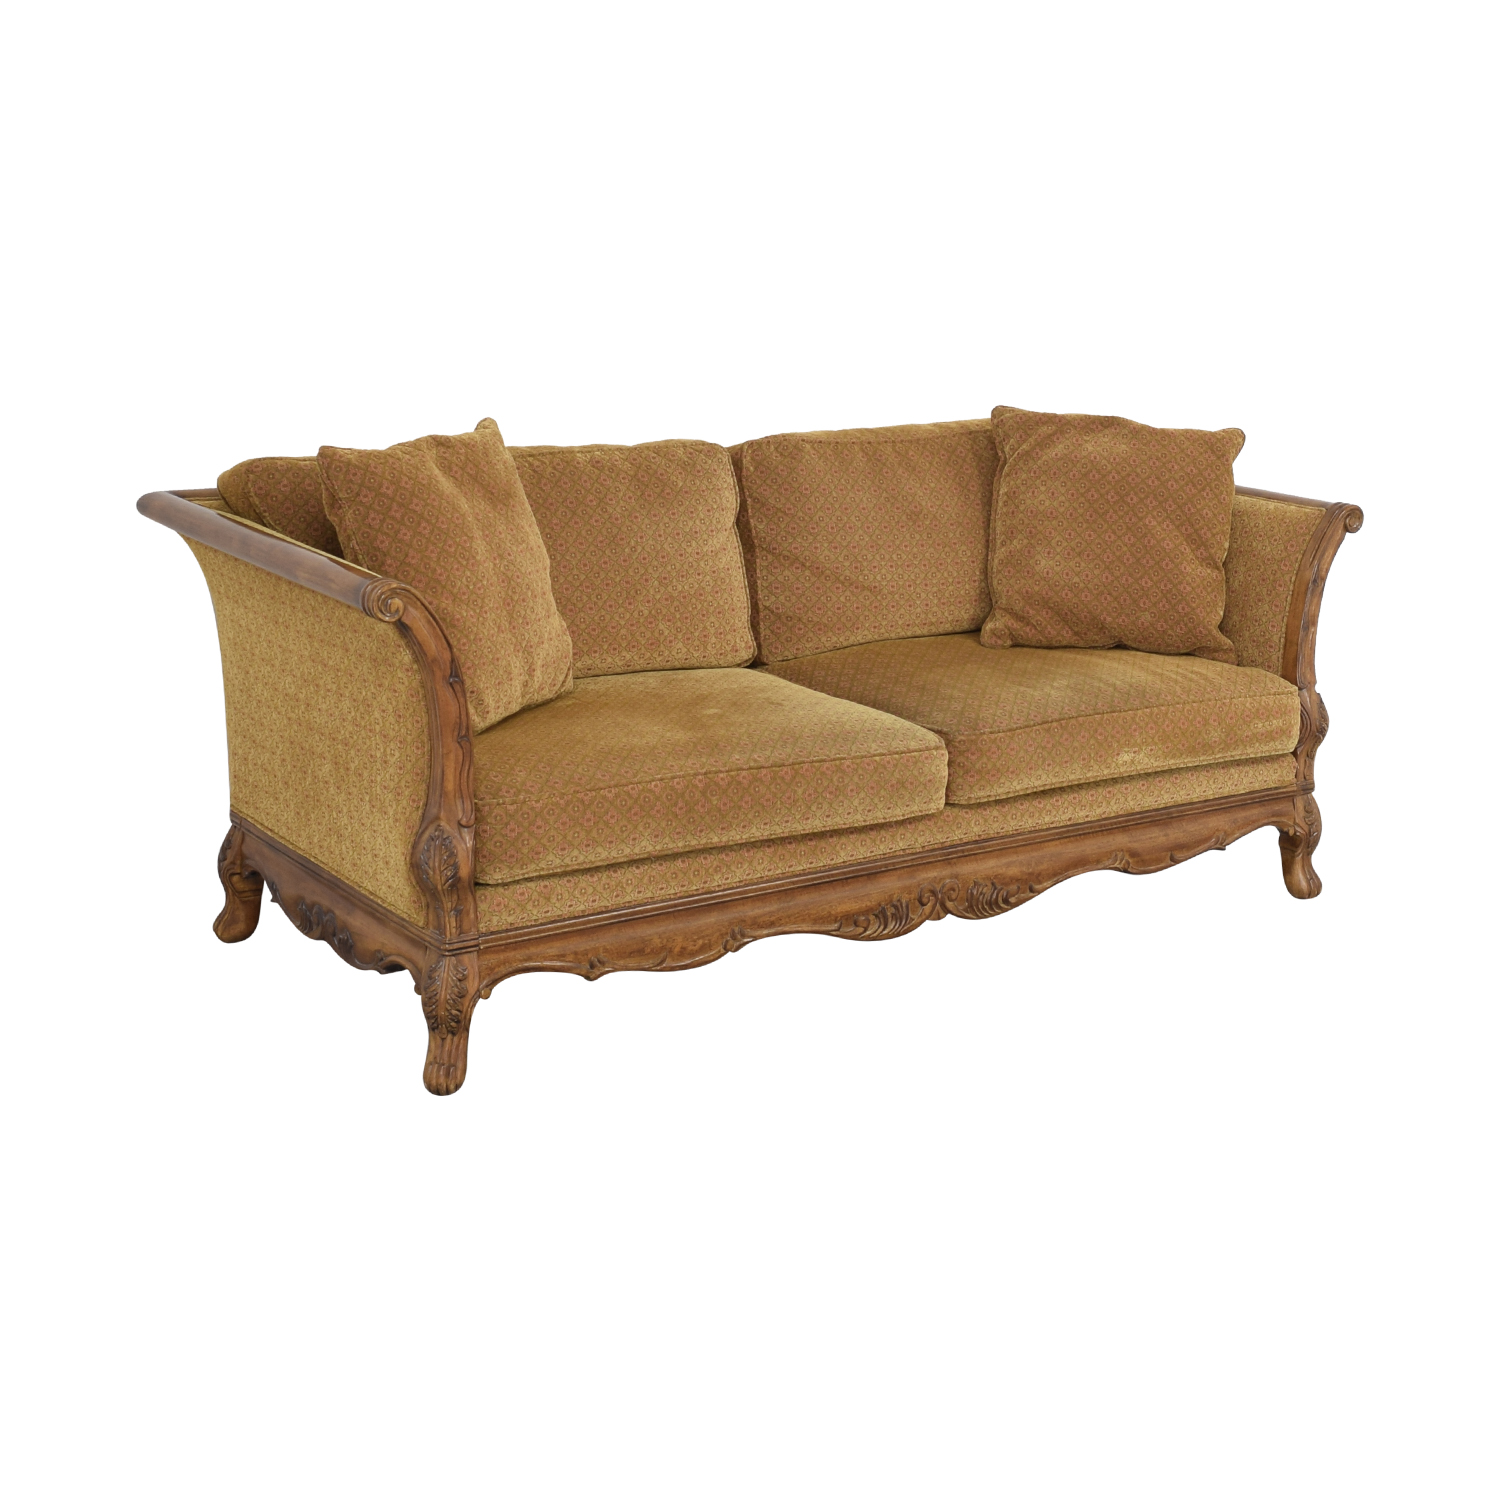 Bernhardt Bernhardt Traditional Sofa brown